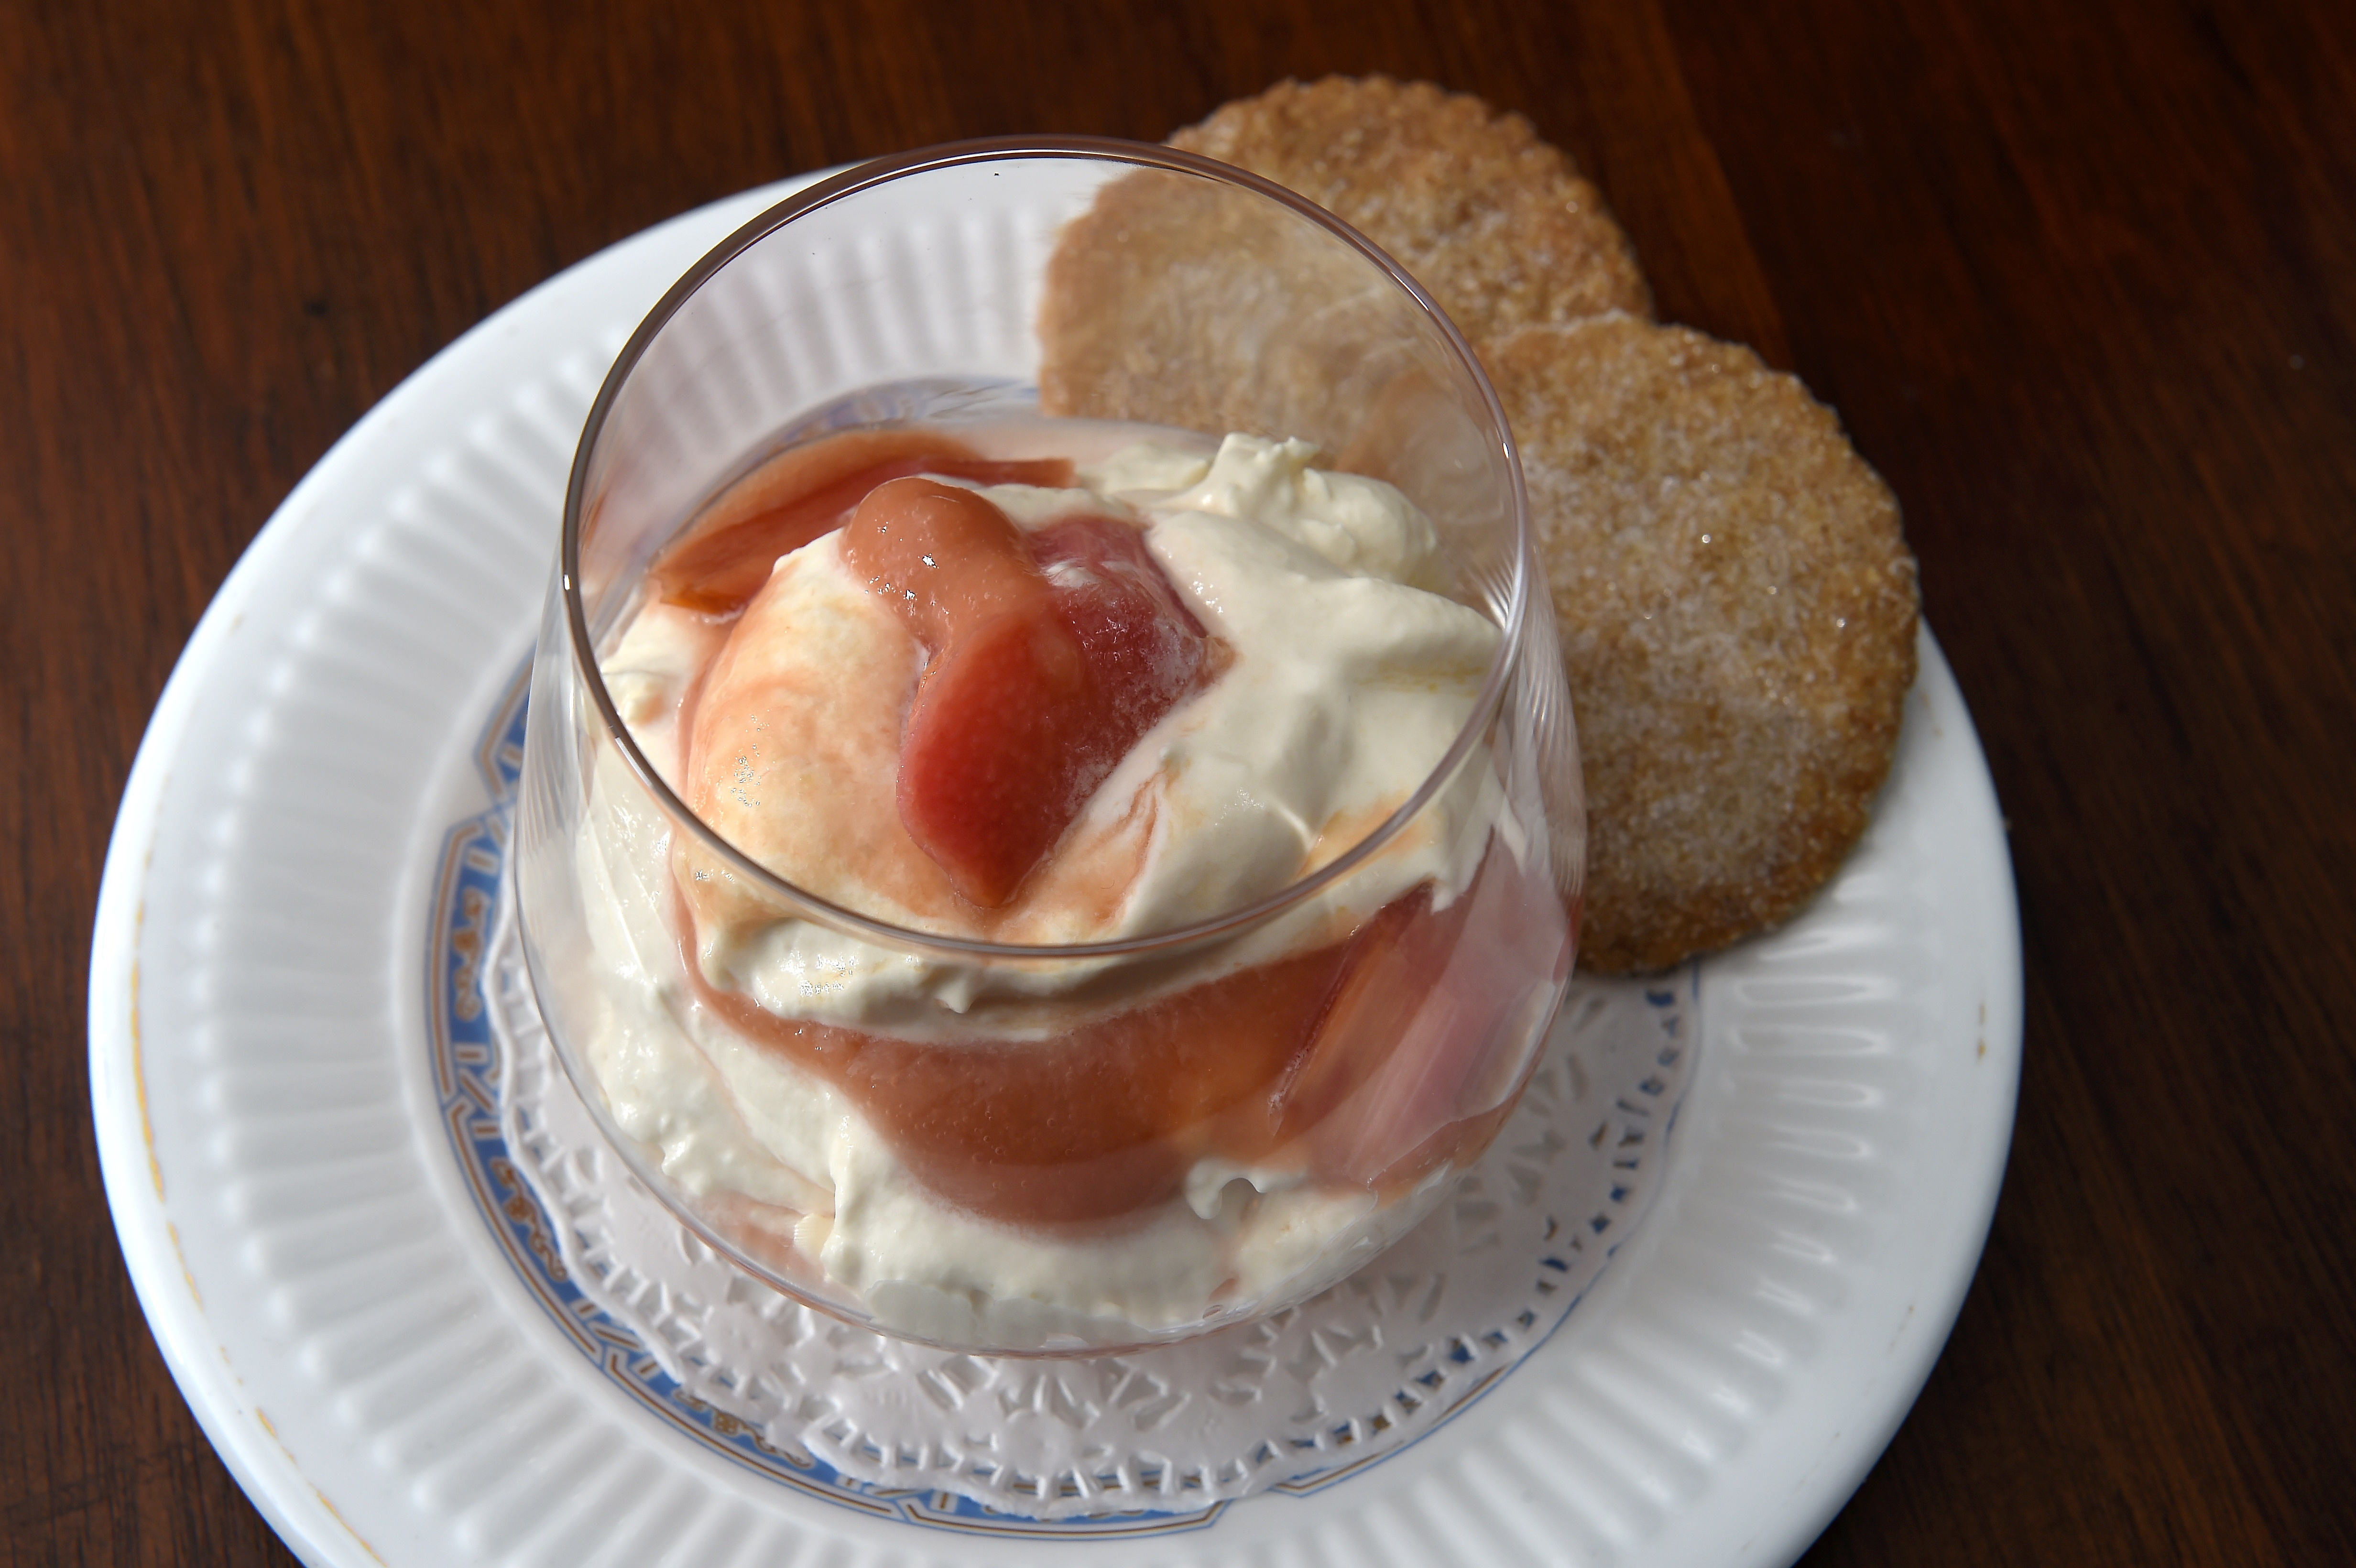 Michael Smith's rhubarb fool with ginger and oatmeal biscuits. Picture by Sandy McCook